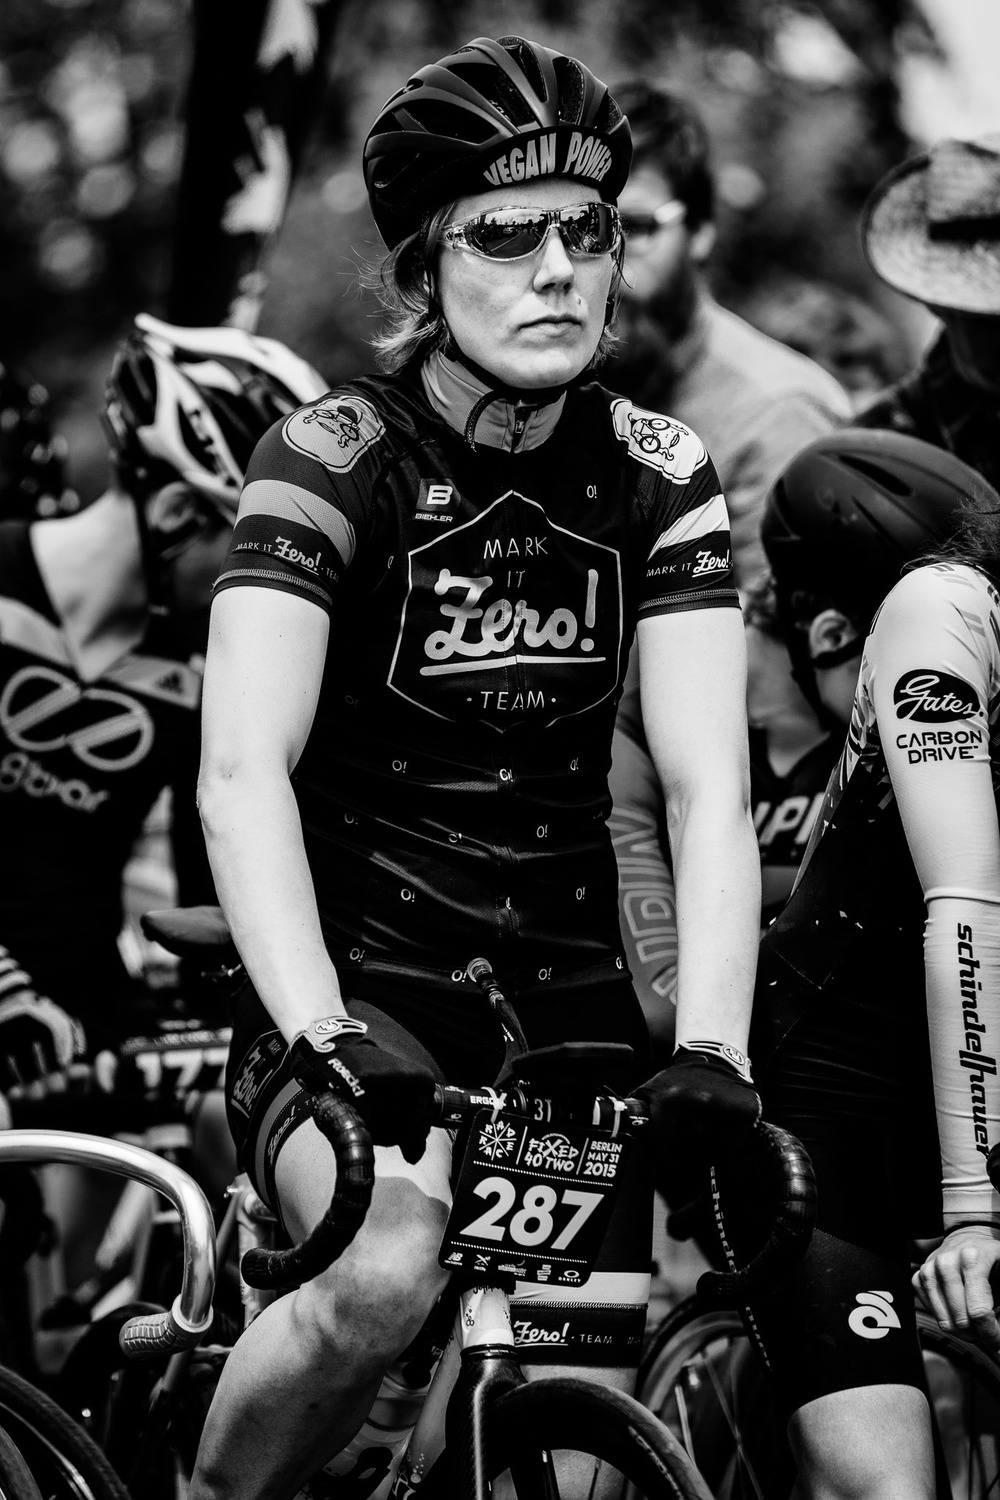 20150531_LEXIUS_RAD_RACE_FIXED42_0019.jpg